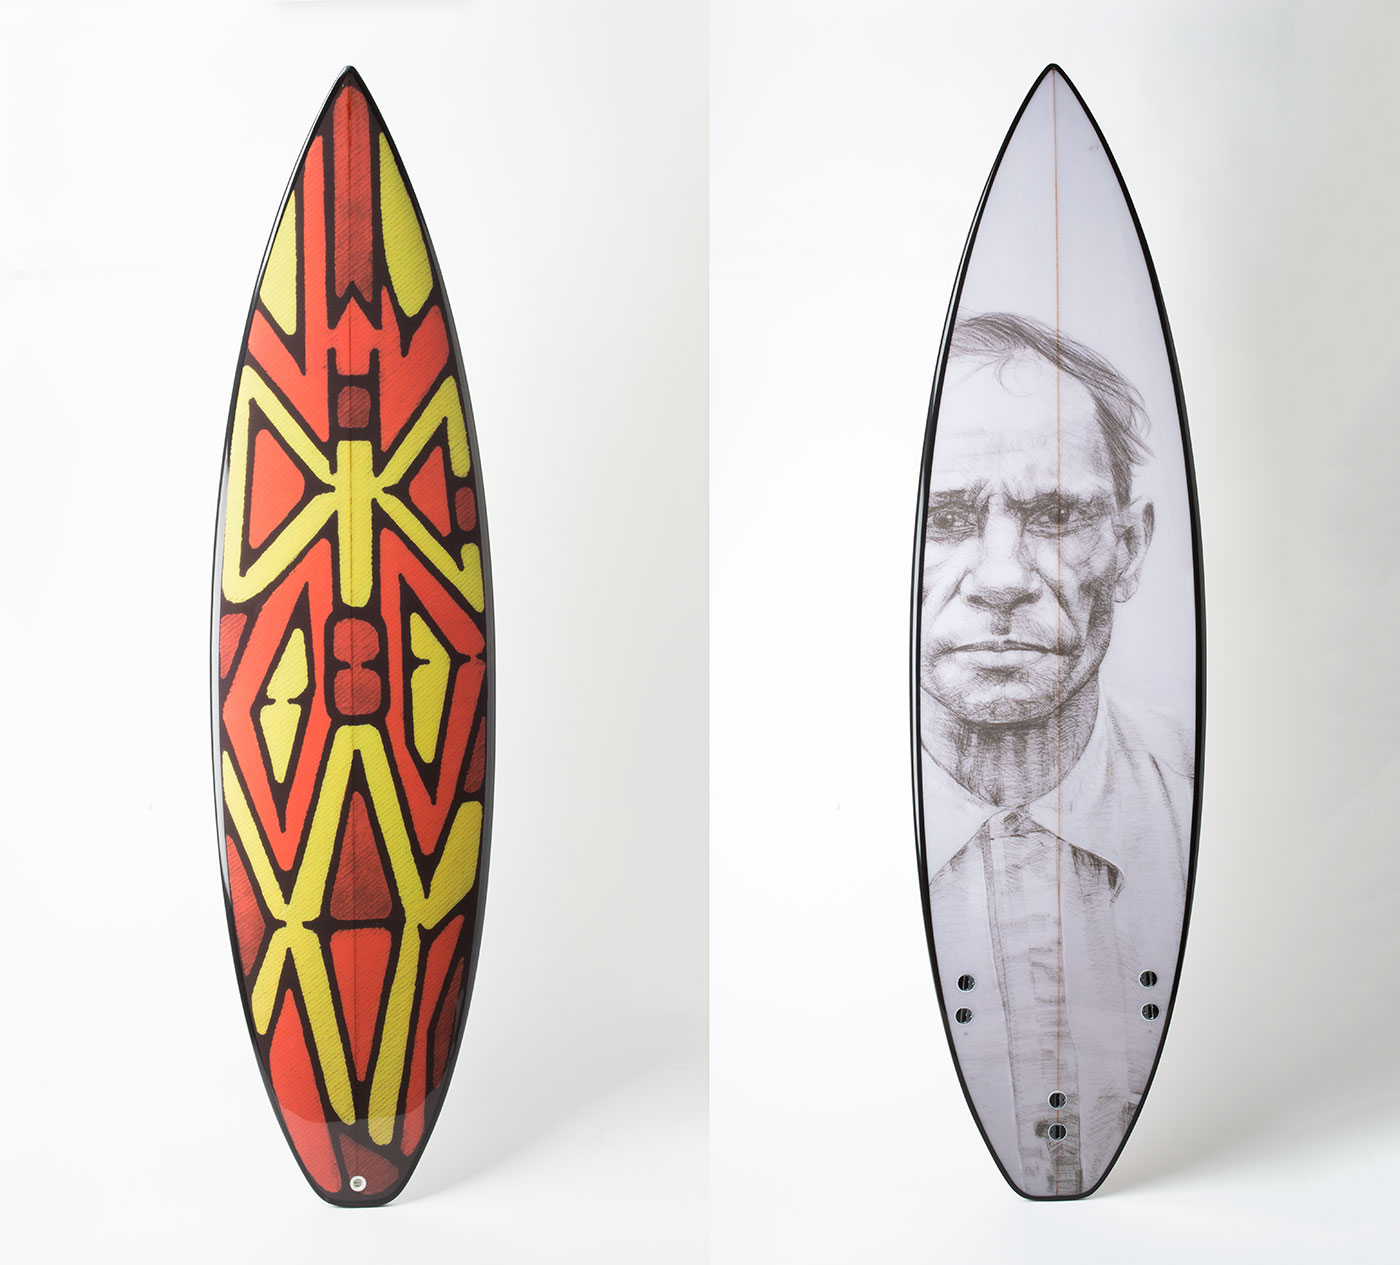 From left to right of the image, front and back of a surfboard and an etching resembling a shield. - click to view larger image